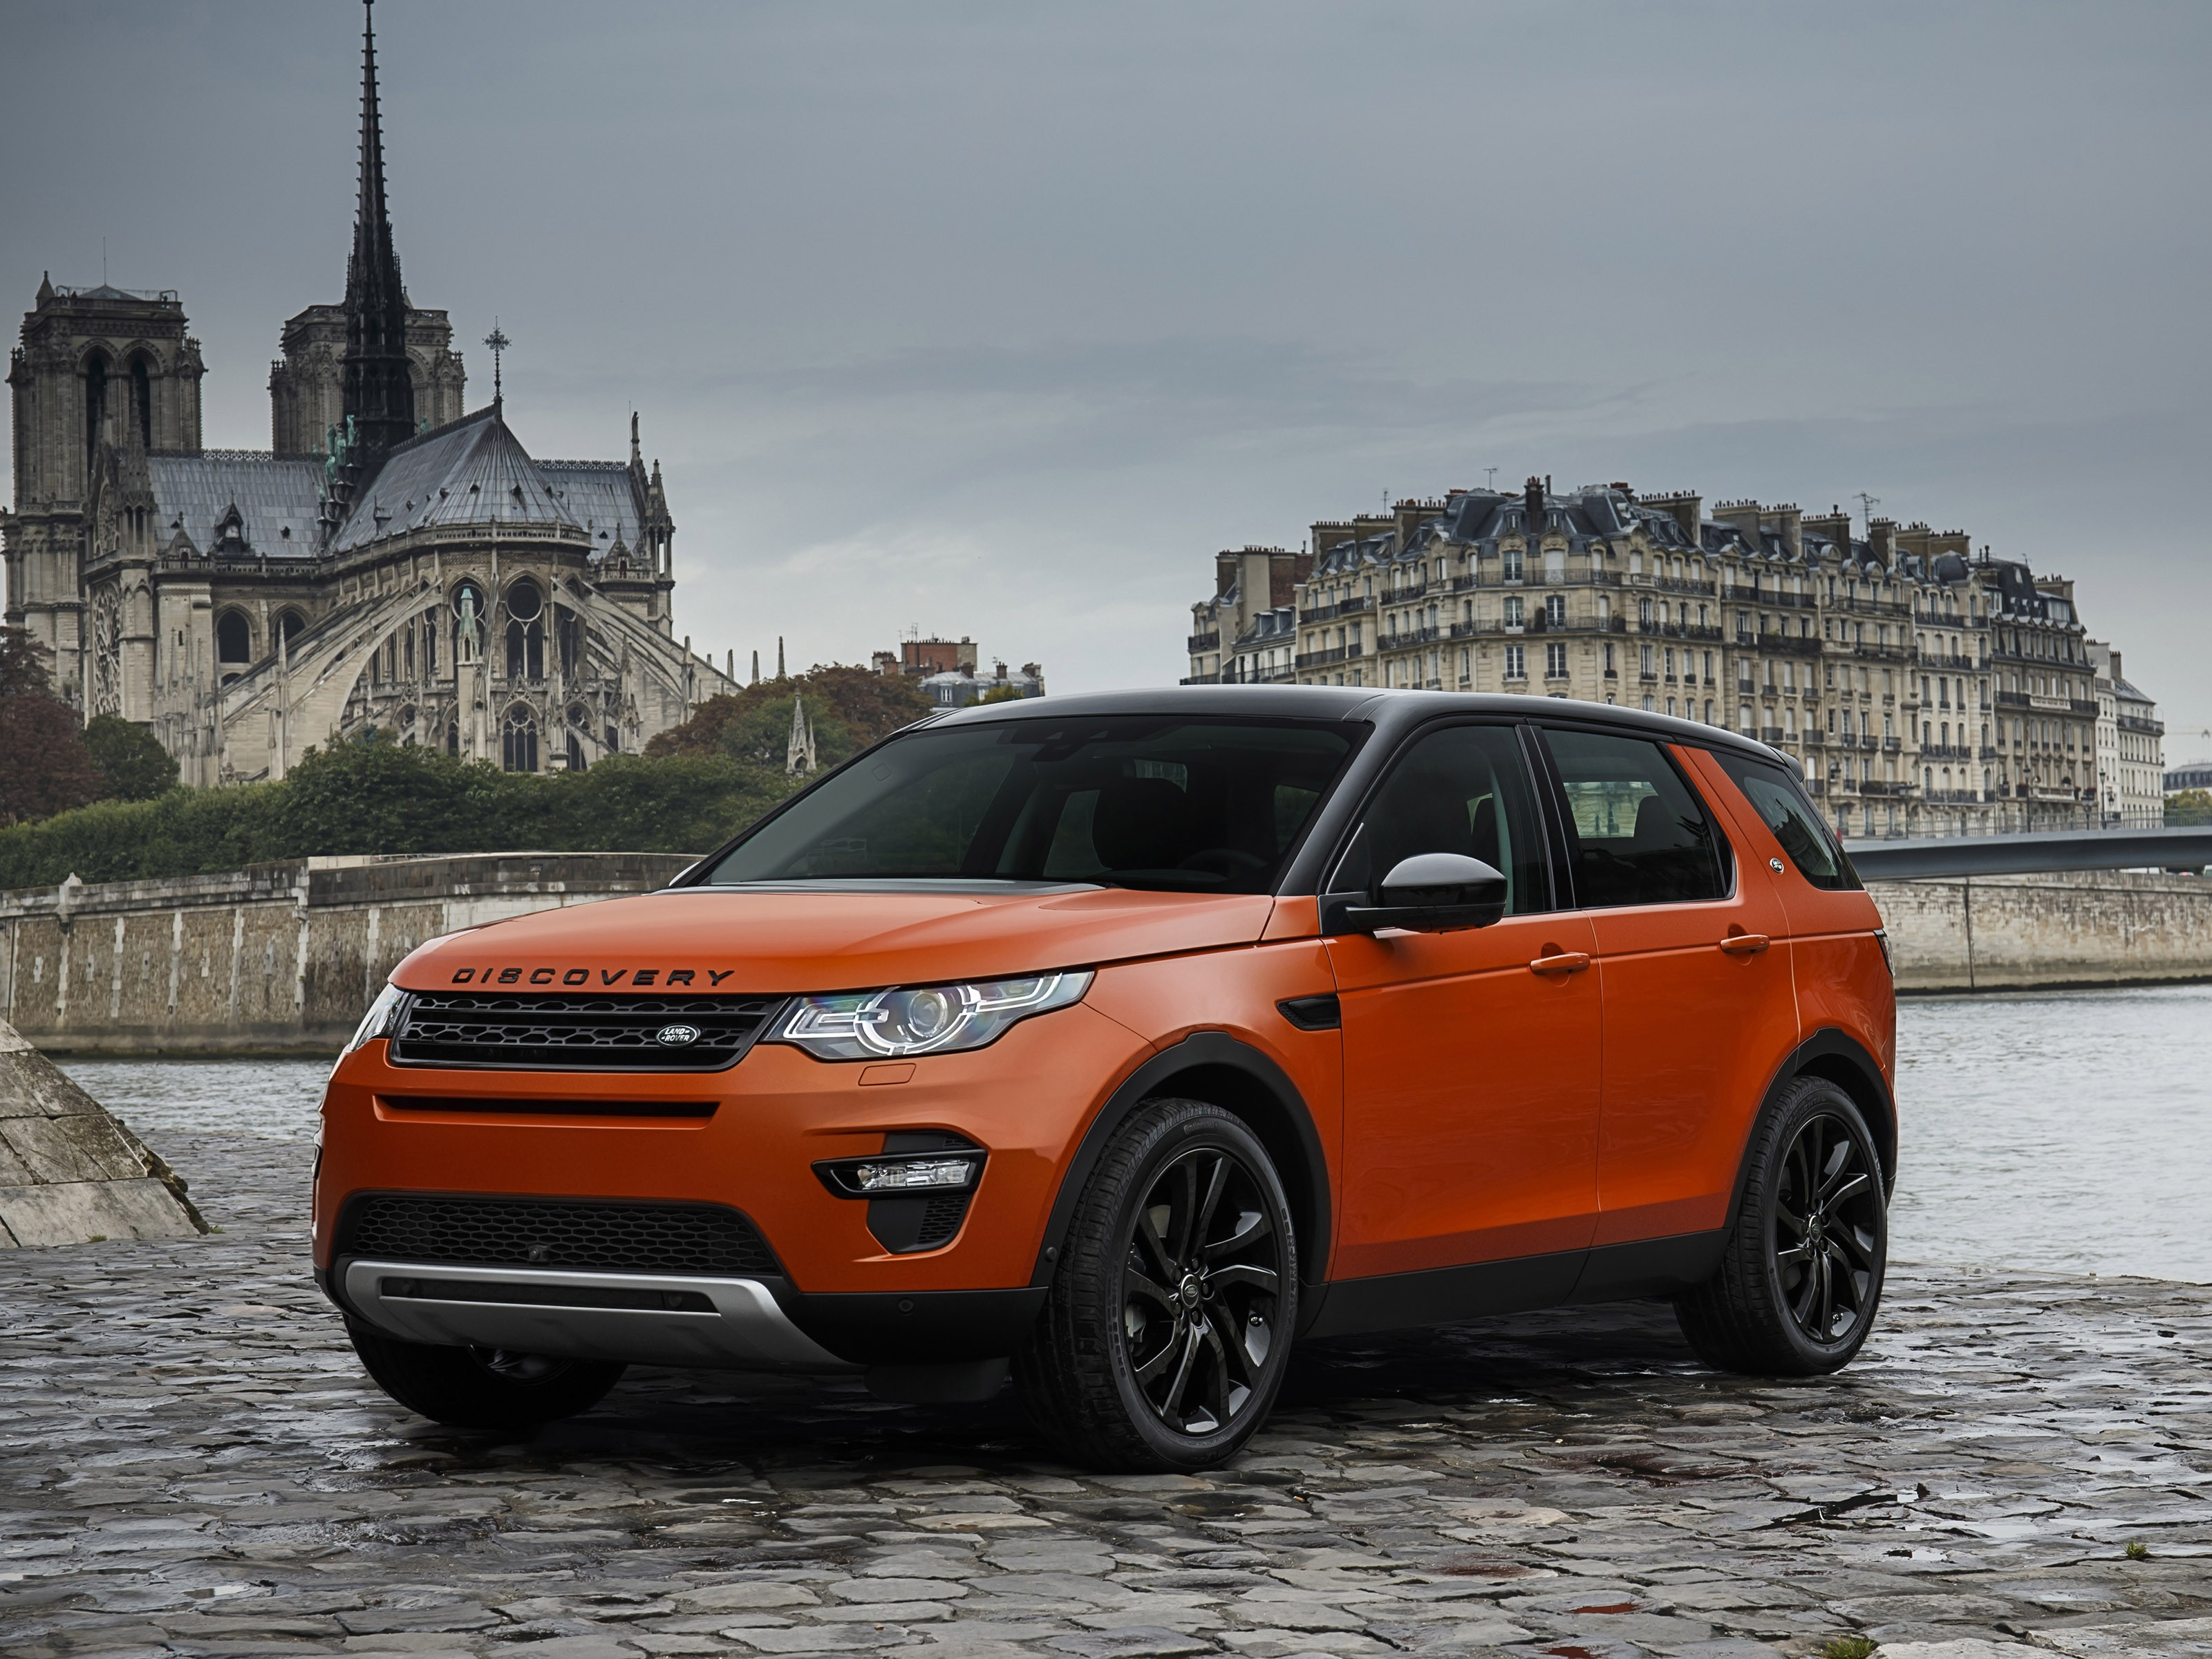 2015 Land Rover Discovery Sport HSE Luxury l550